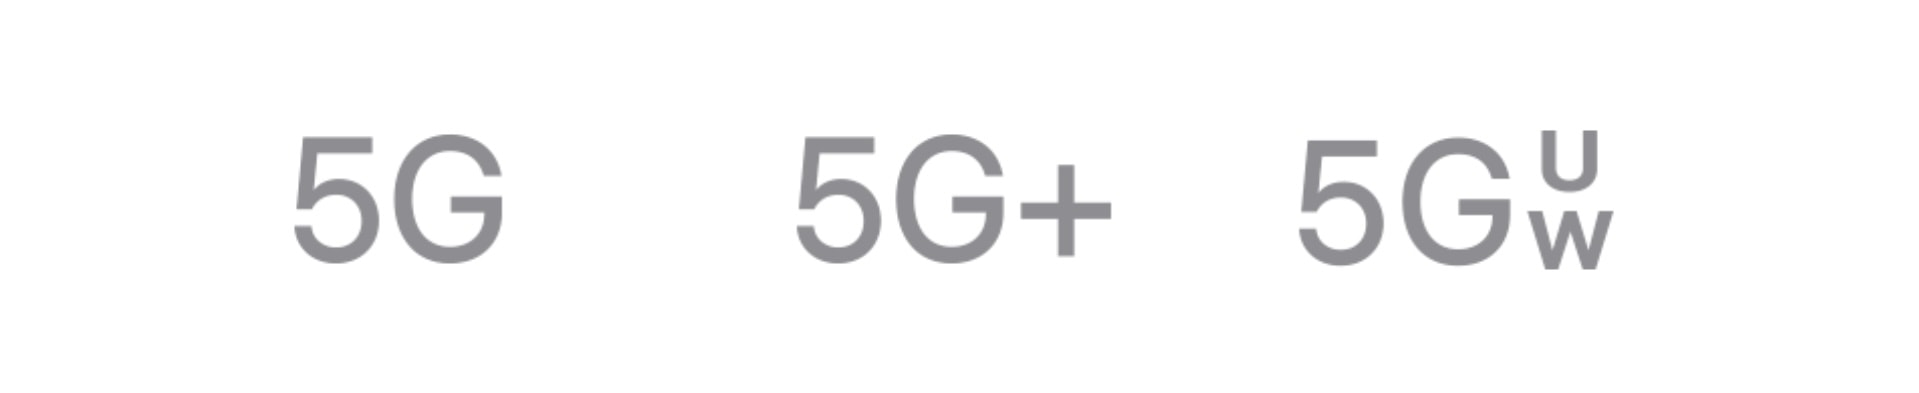 Understand 5G icons on iPhone 12